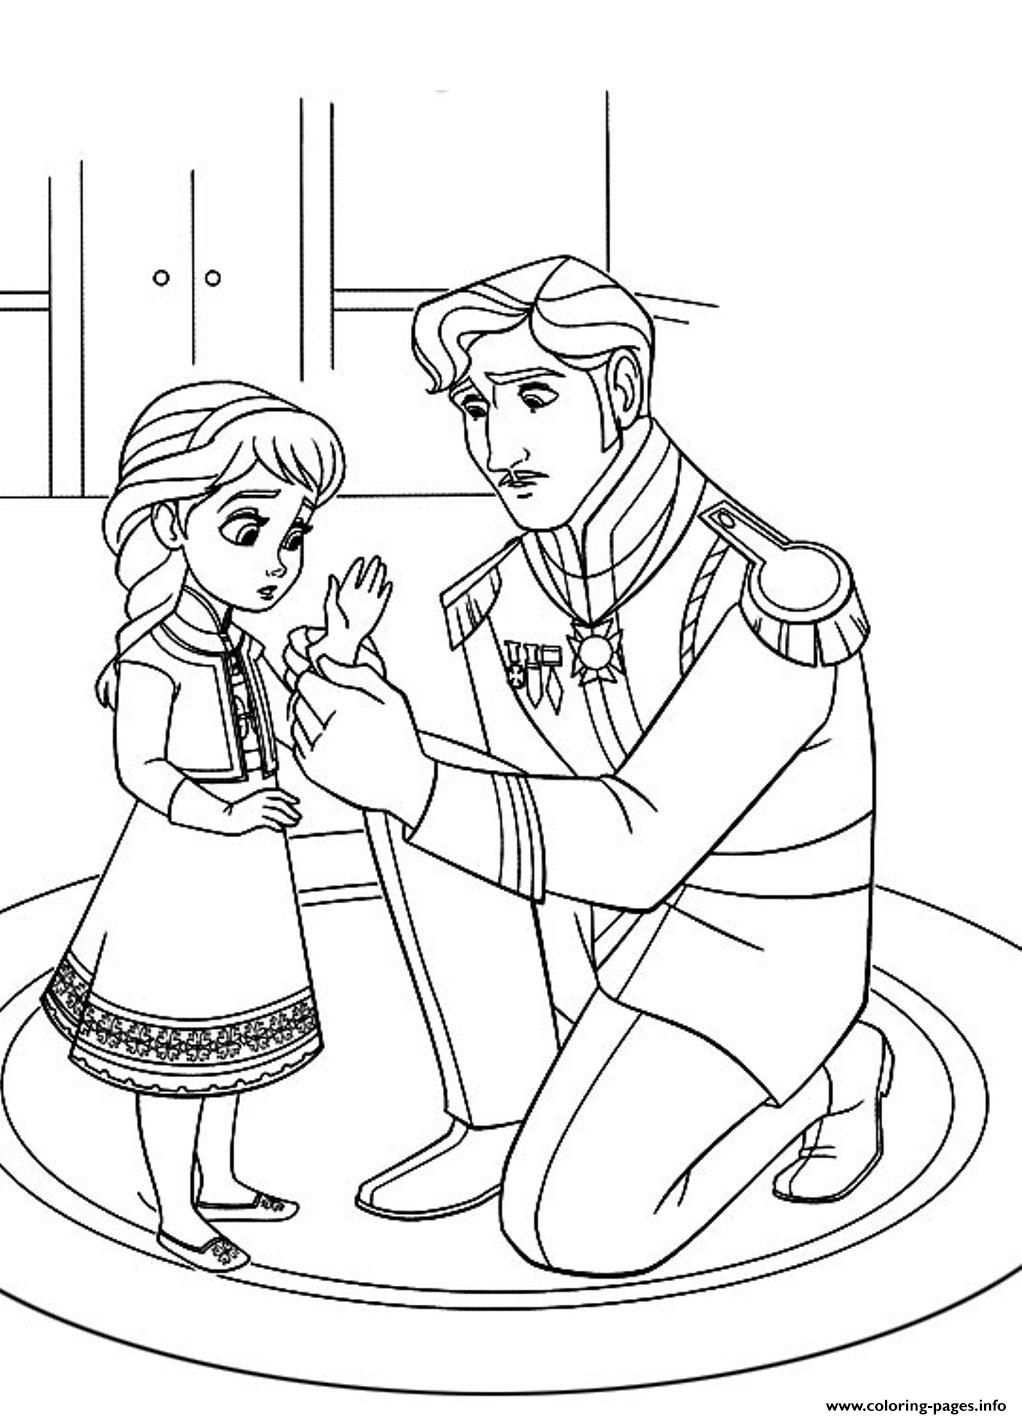 Print Free Frozen D500 Coloring Pages With Images Elsa